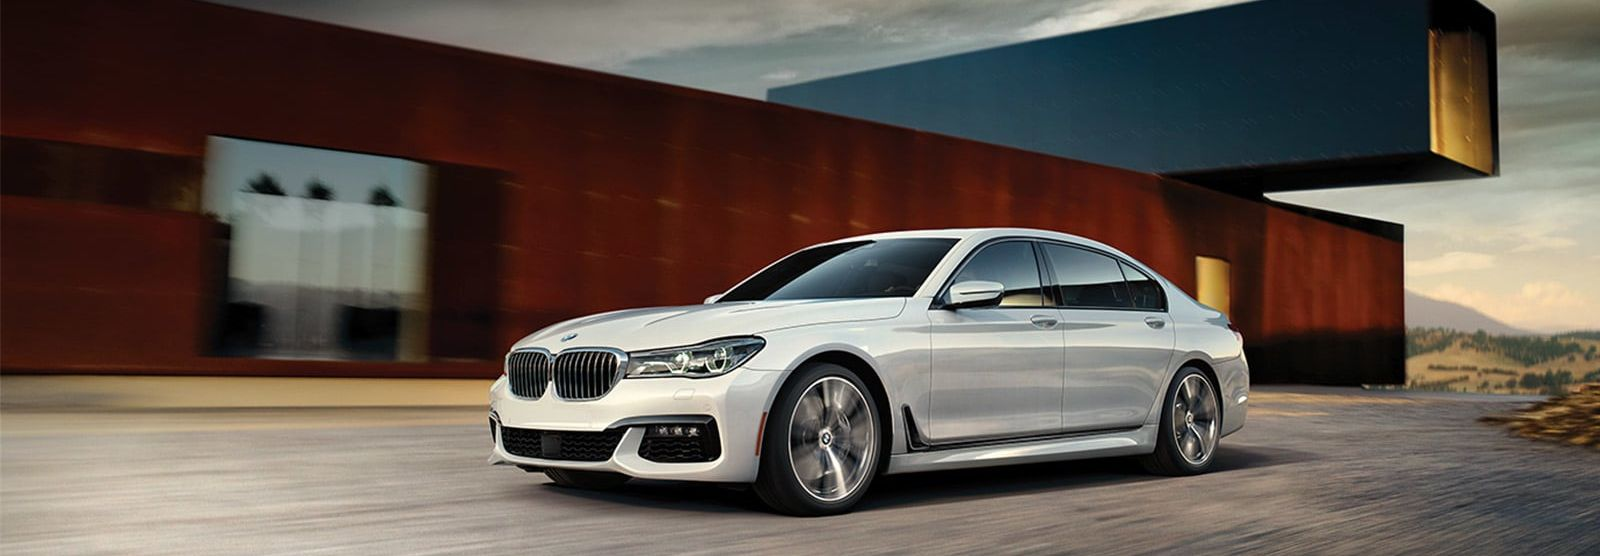 2019 BMW 7 Series Financing in Plano, TX